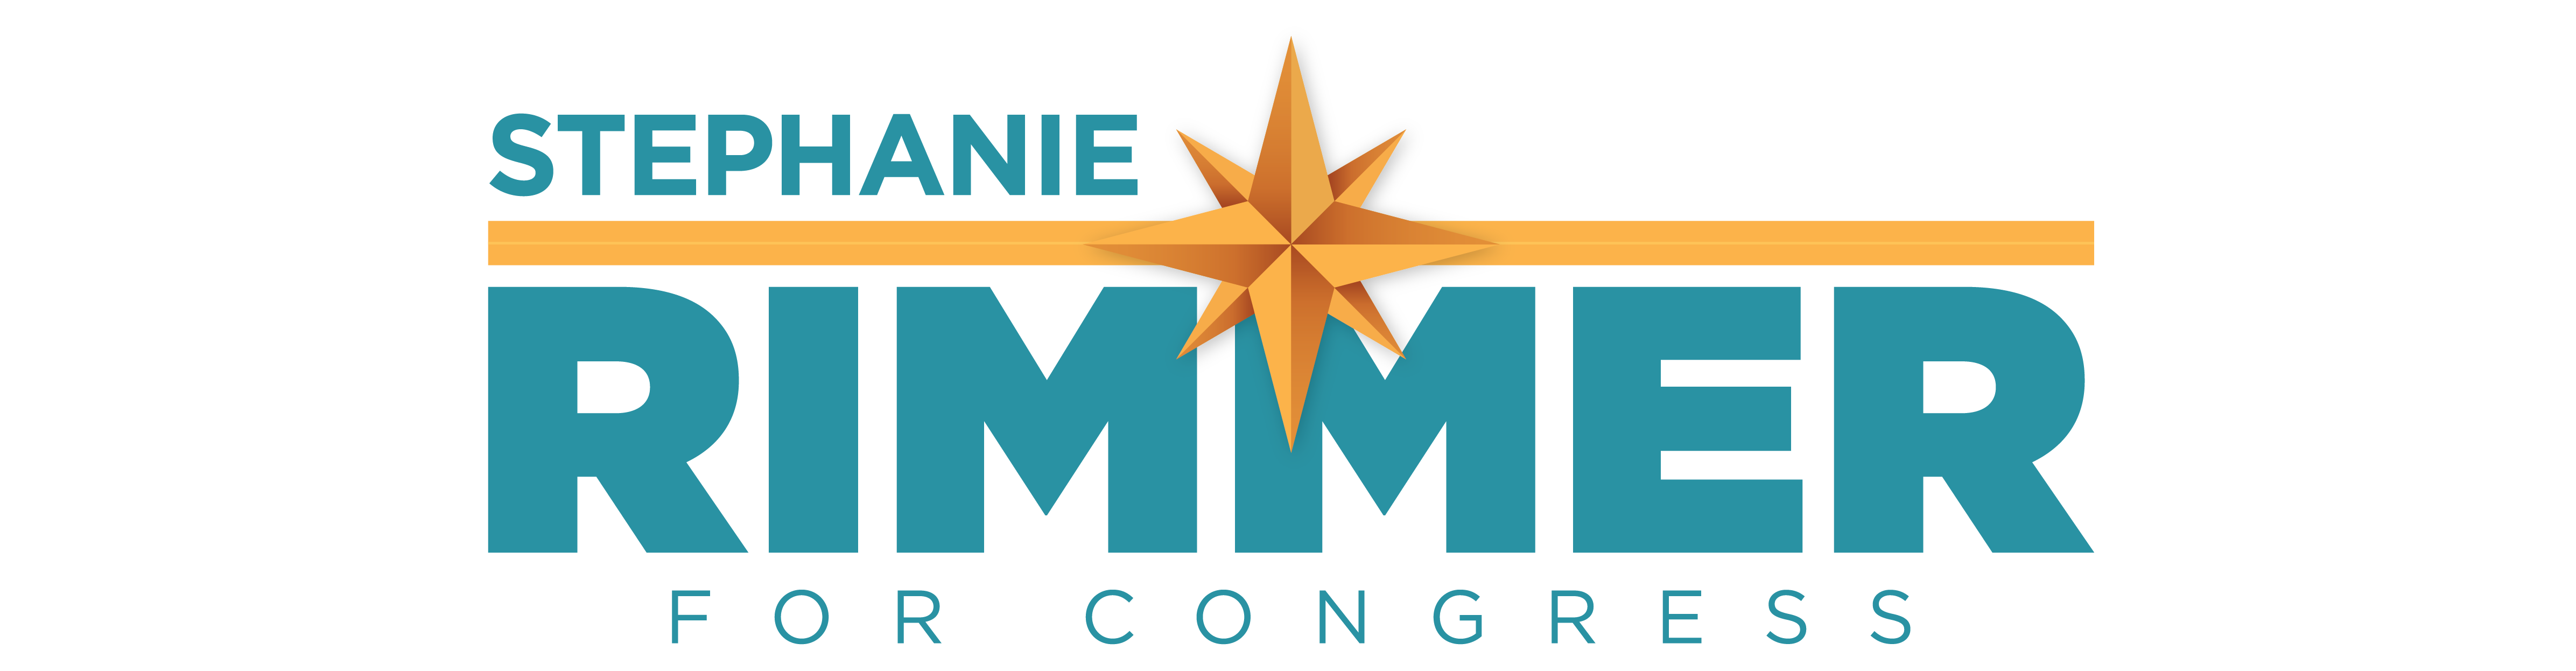 Stephanie Rimmer for Congress